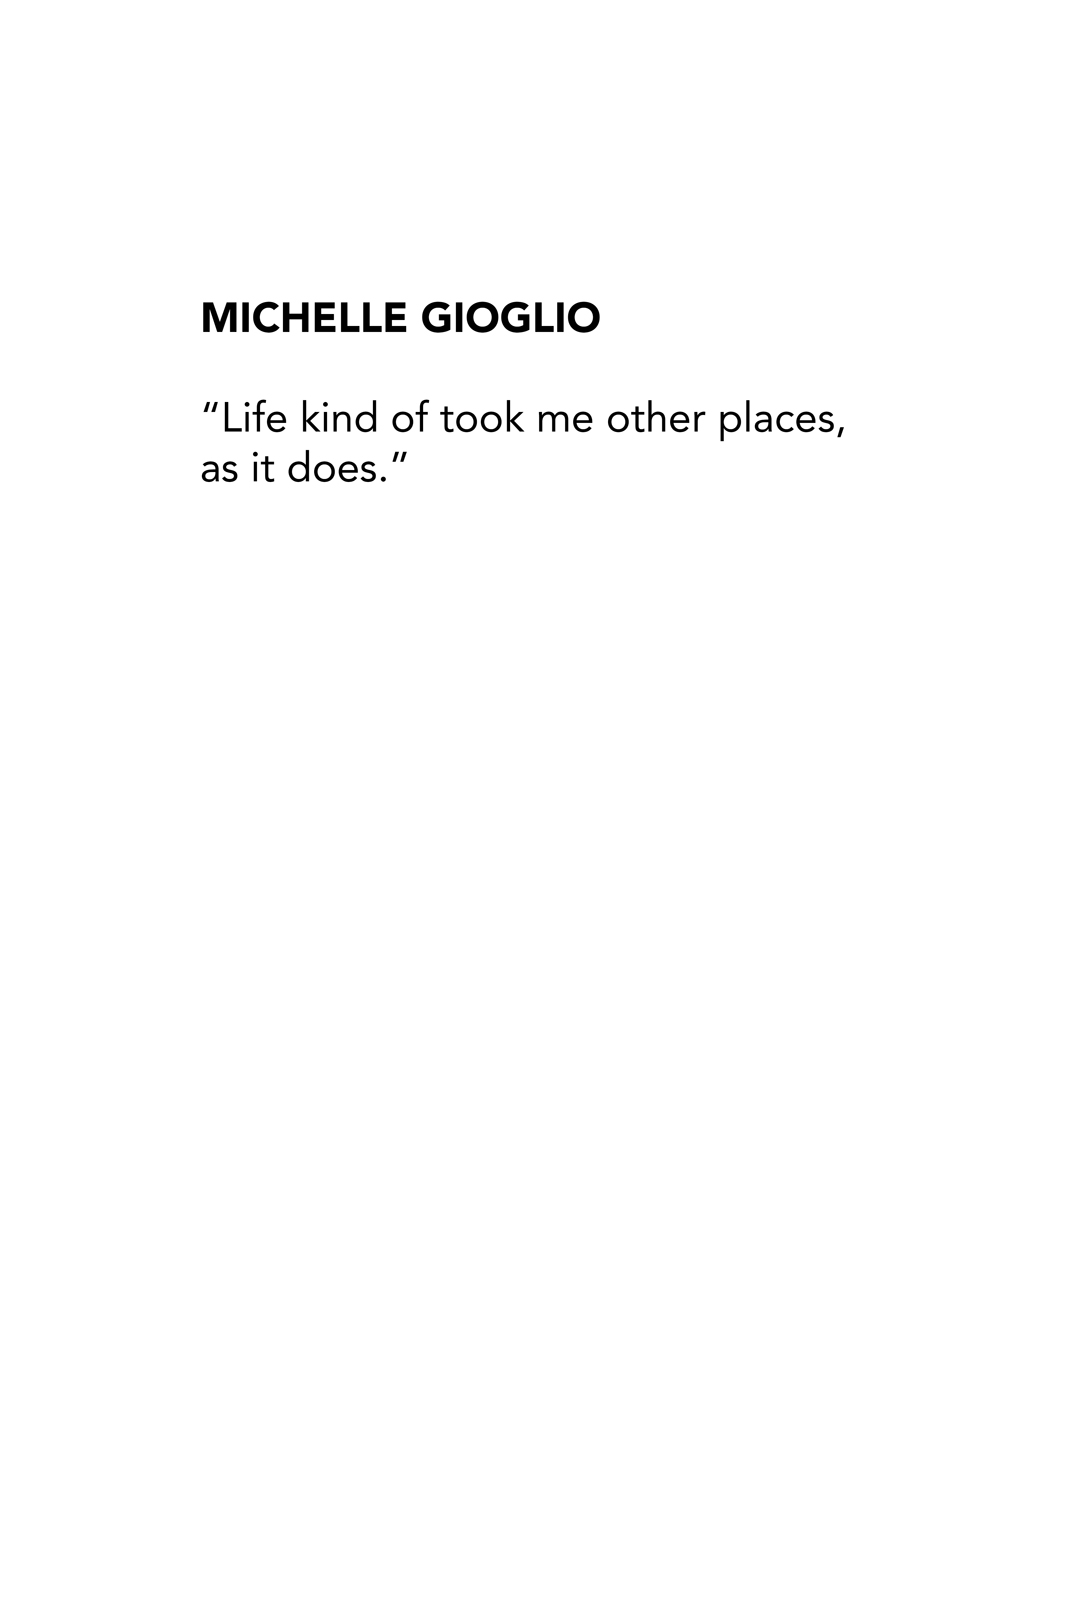 Michelle Gioglio Quote.jpg